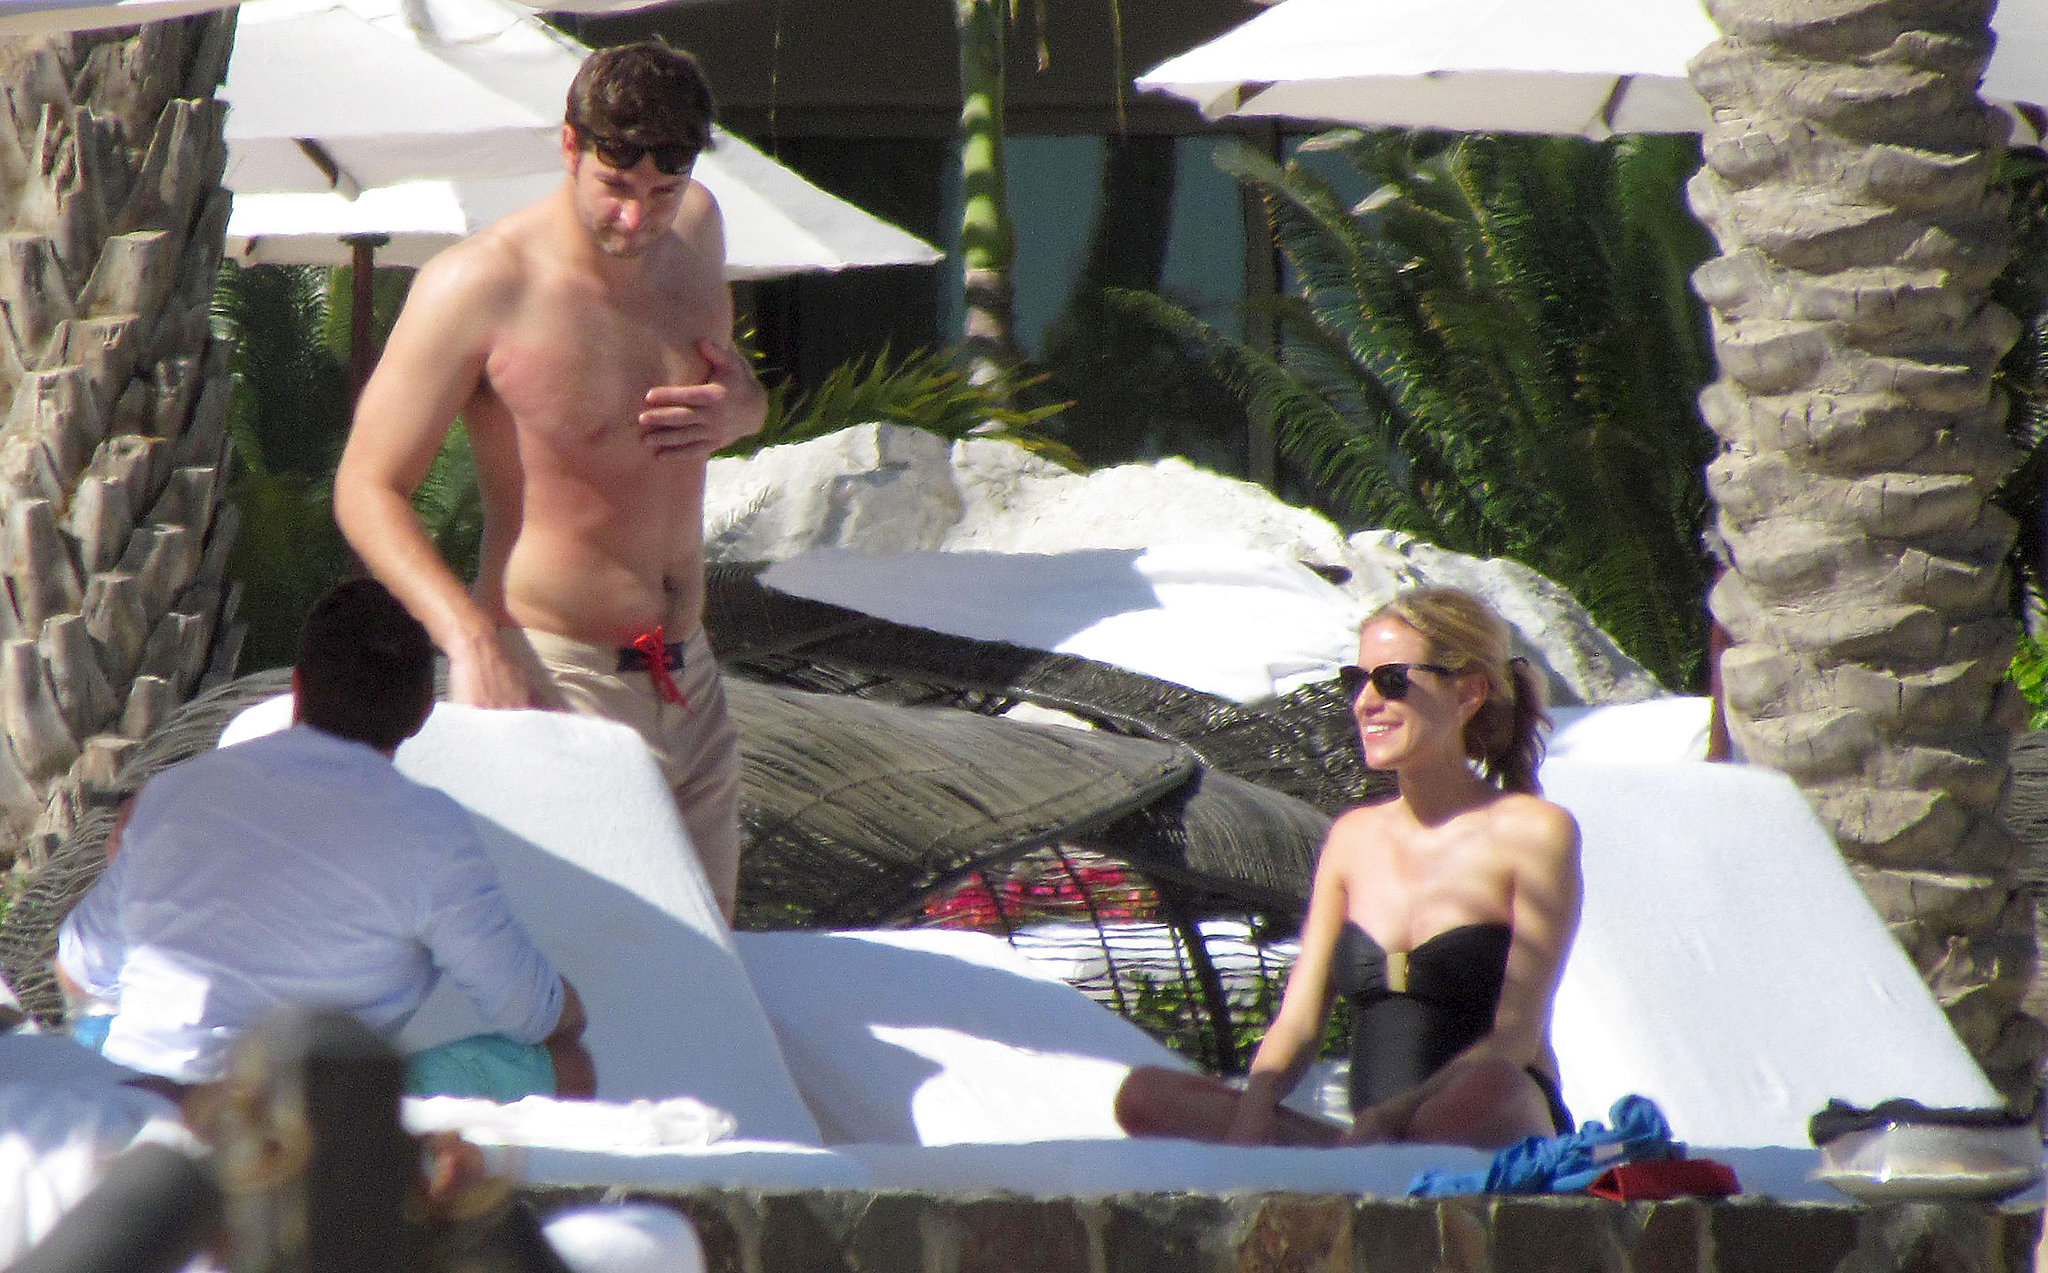 In March 2012, a then-pregnant Kristin Cavallari soaked up the sun with Jay Cutler in Cabo San Lucas, where they attended pal Kendhal Beal's wedding.